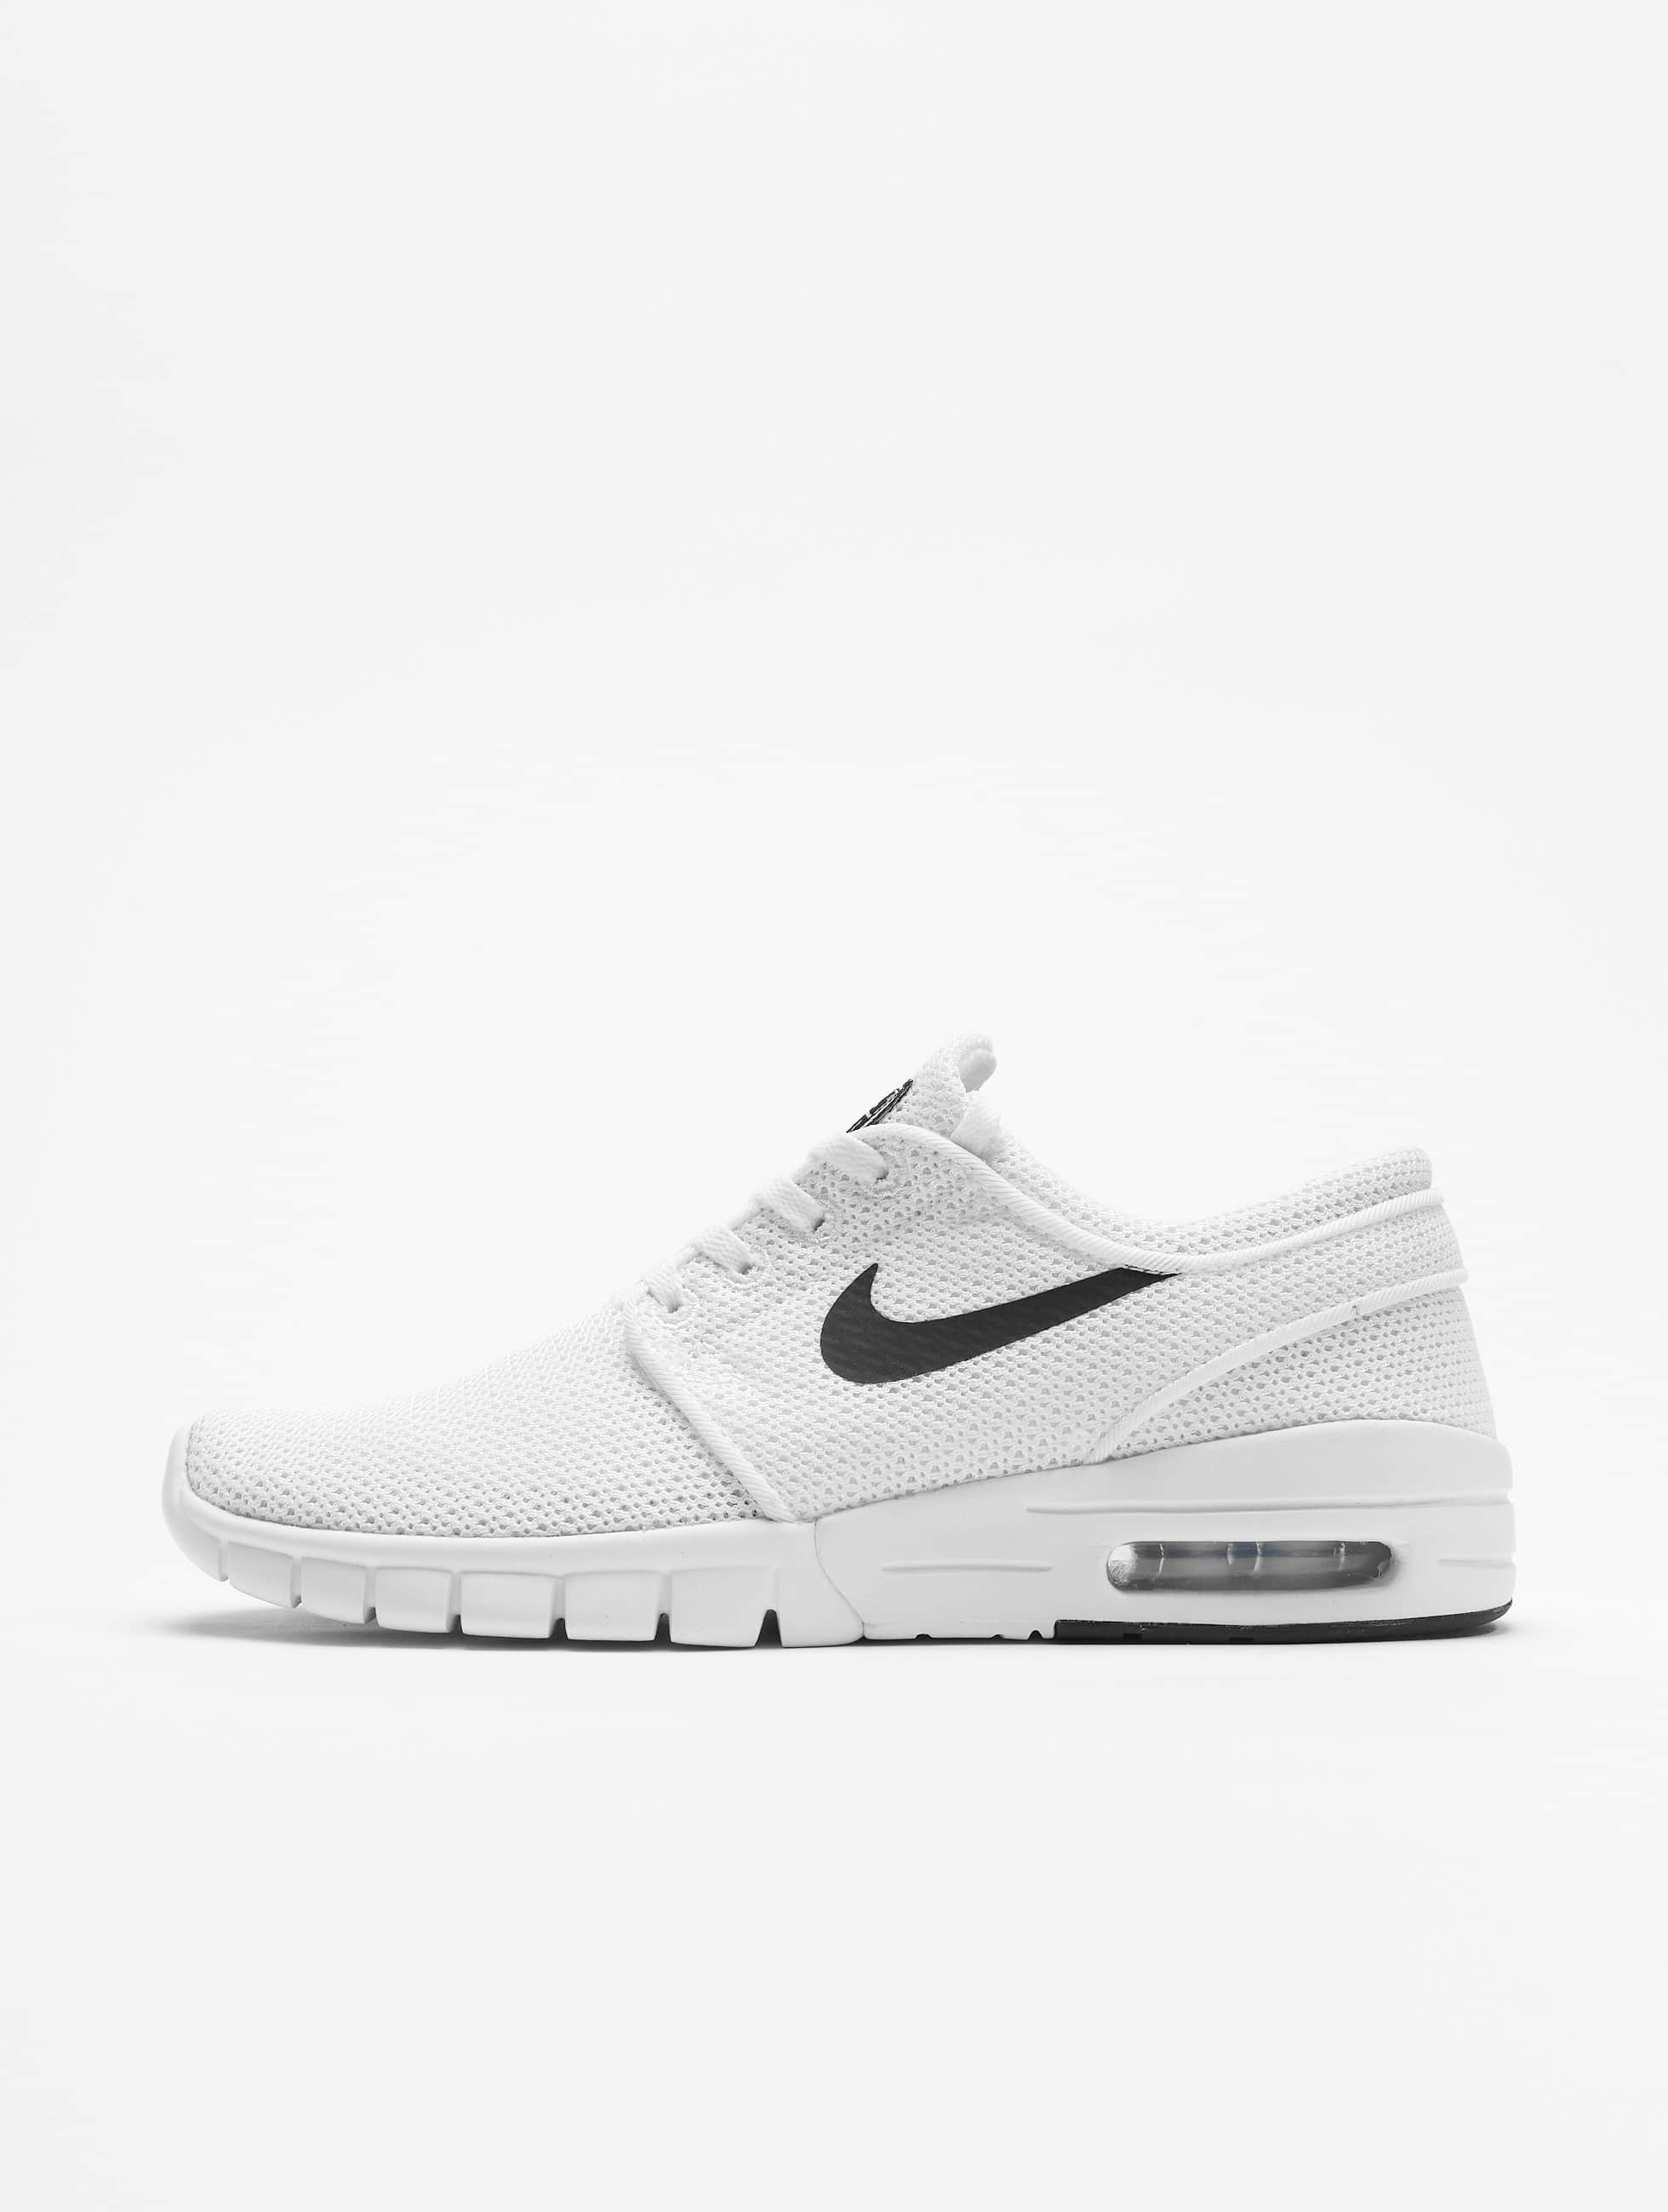 nike sb stefan janoski max blanc homme baskets nike sb acheter pas cher chaussures 218446. Black Bedroom Furniture Sets. Home Design Ideas